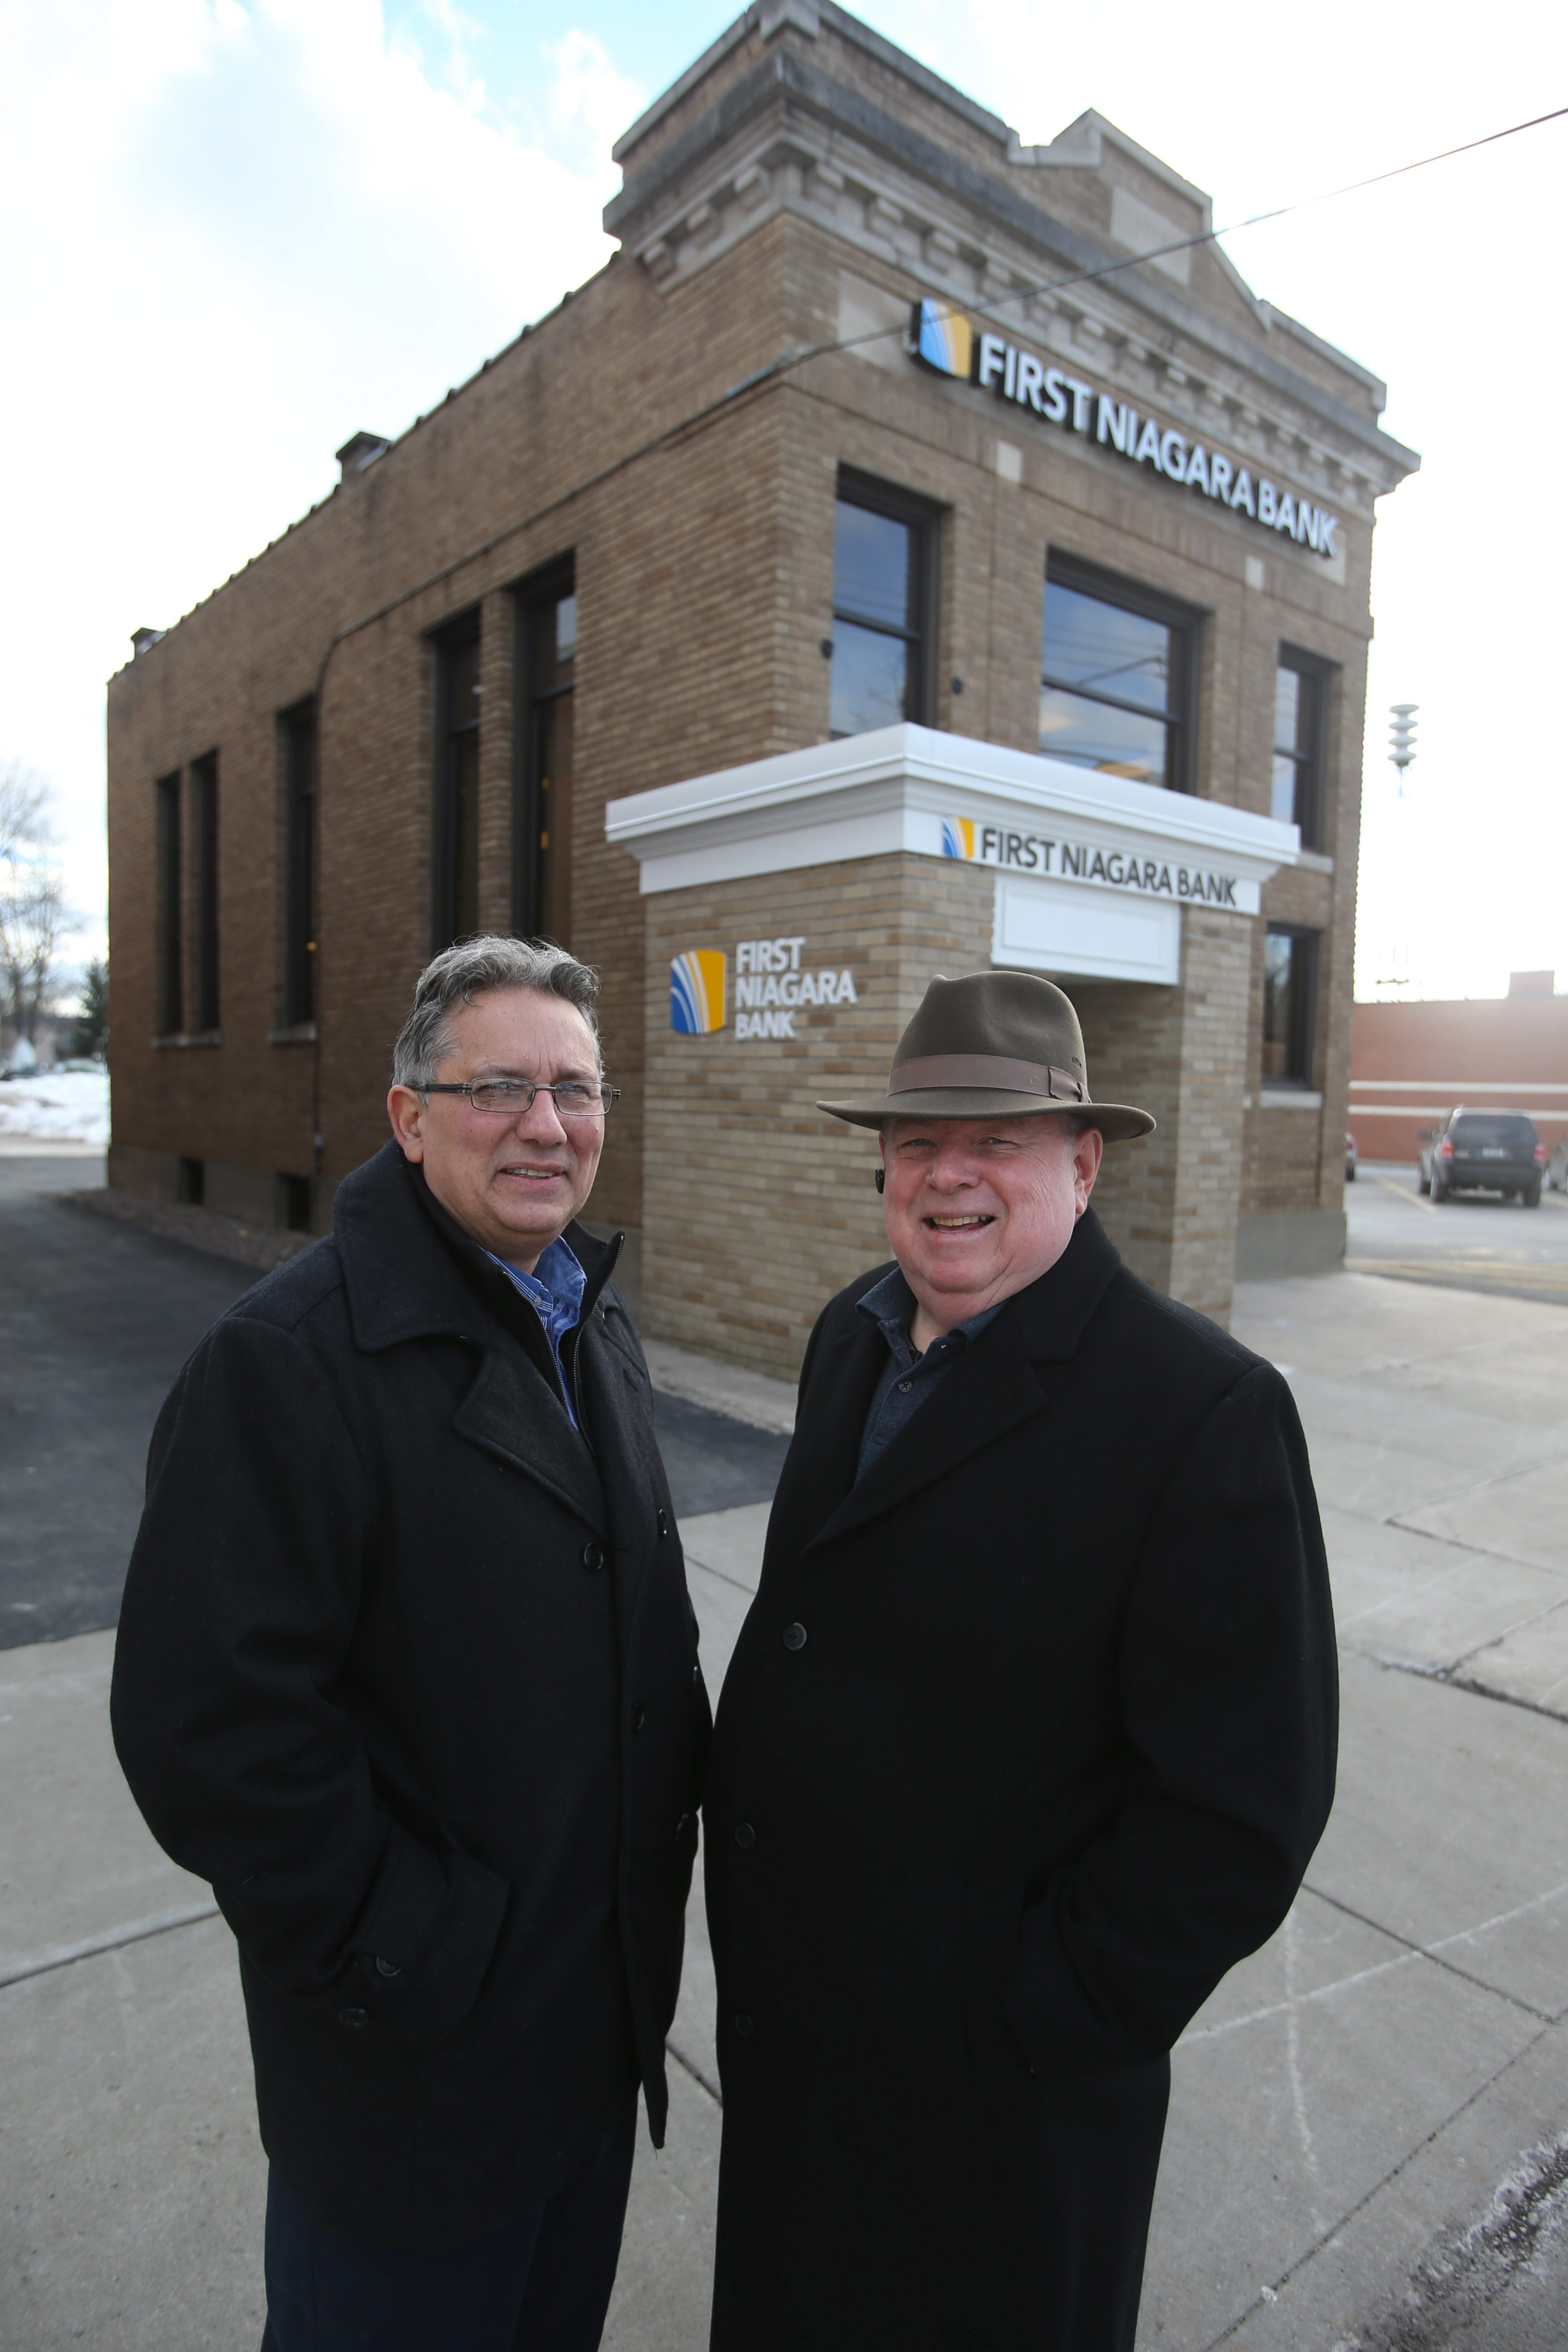 Wilson Mayor Bernard Leiker, left, and Phil Russell, president of Wilson Business Association, are trying to find another financial institution to move into the building.